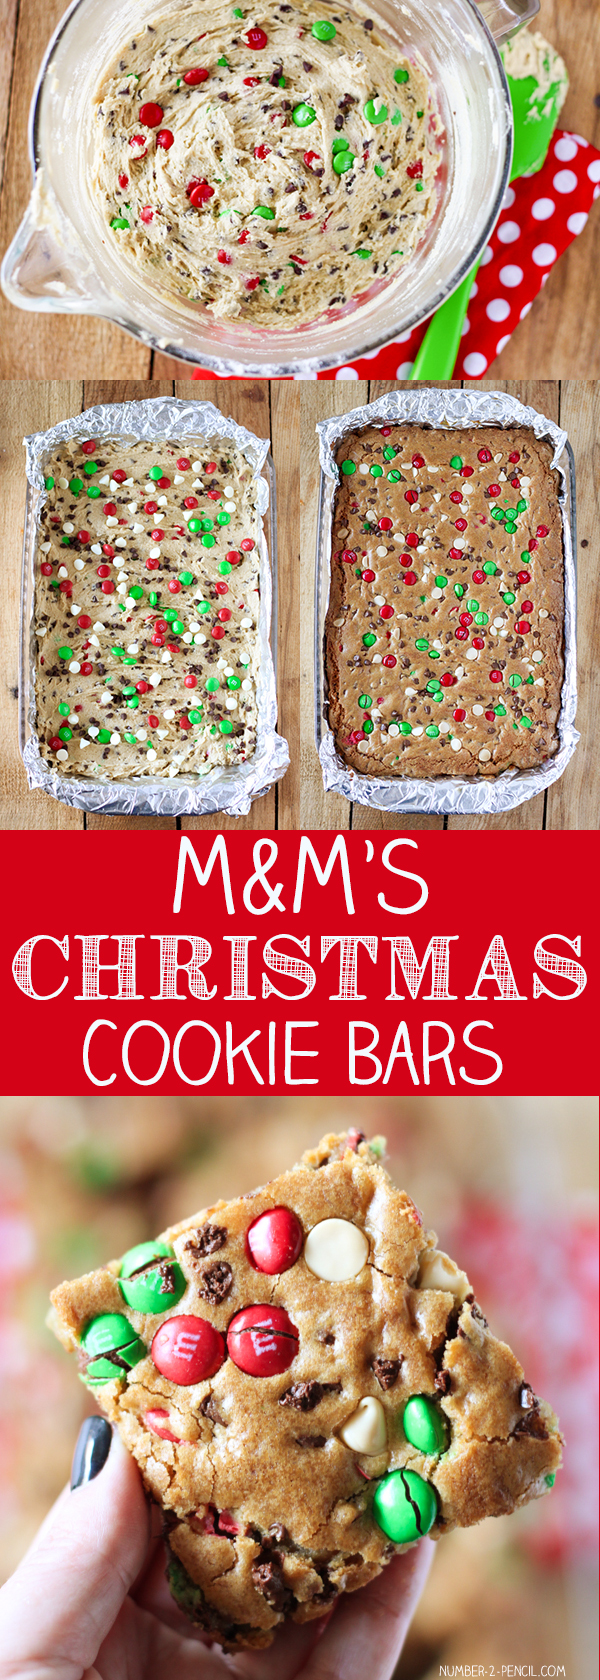 M&M'S Christmas Cookie Bars - No. 2 Pencil